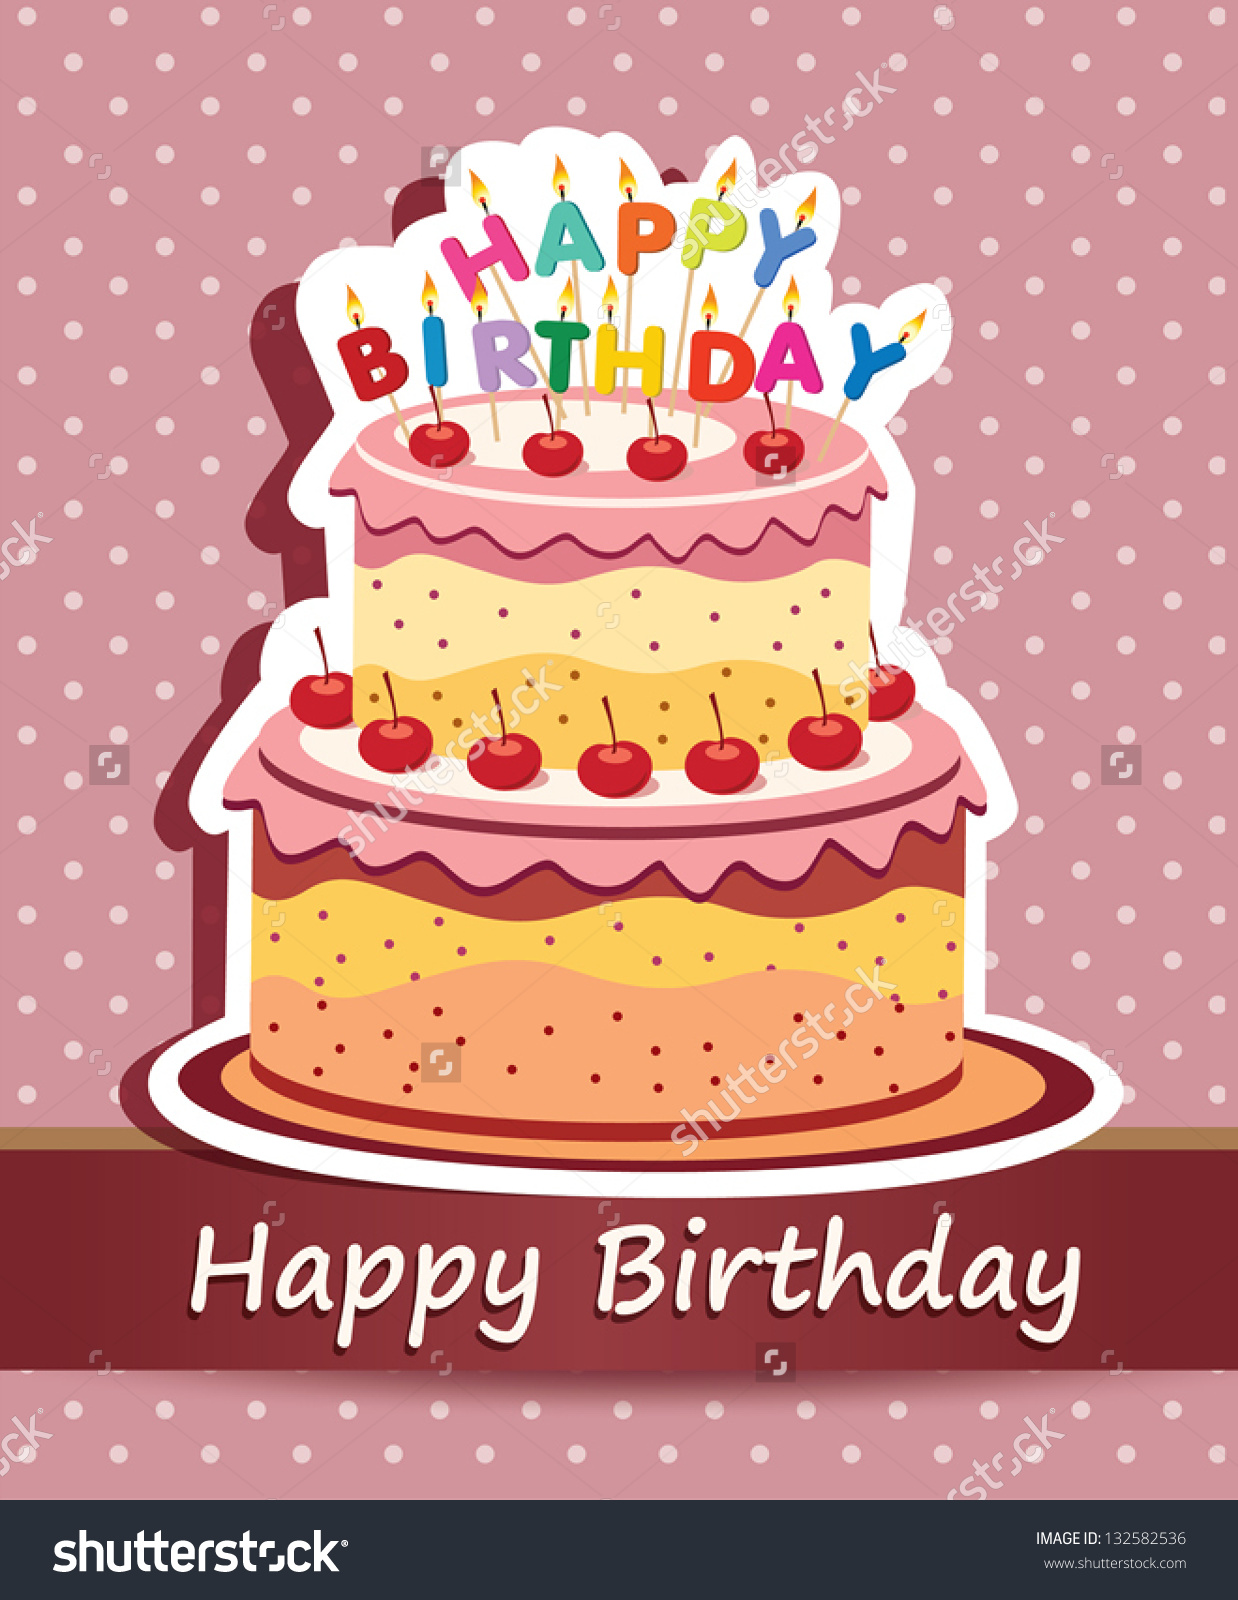 happy birthday cake greeting cards images ; birthday-cake-card-vector-colorful-happy-birthday-card-available-in-high-resolution-and-several-sizes-to-fit-the-needs-of-your-project